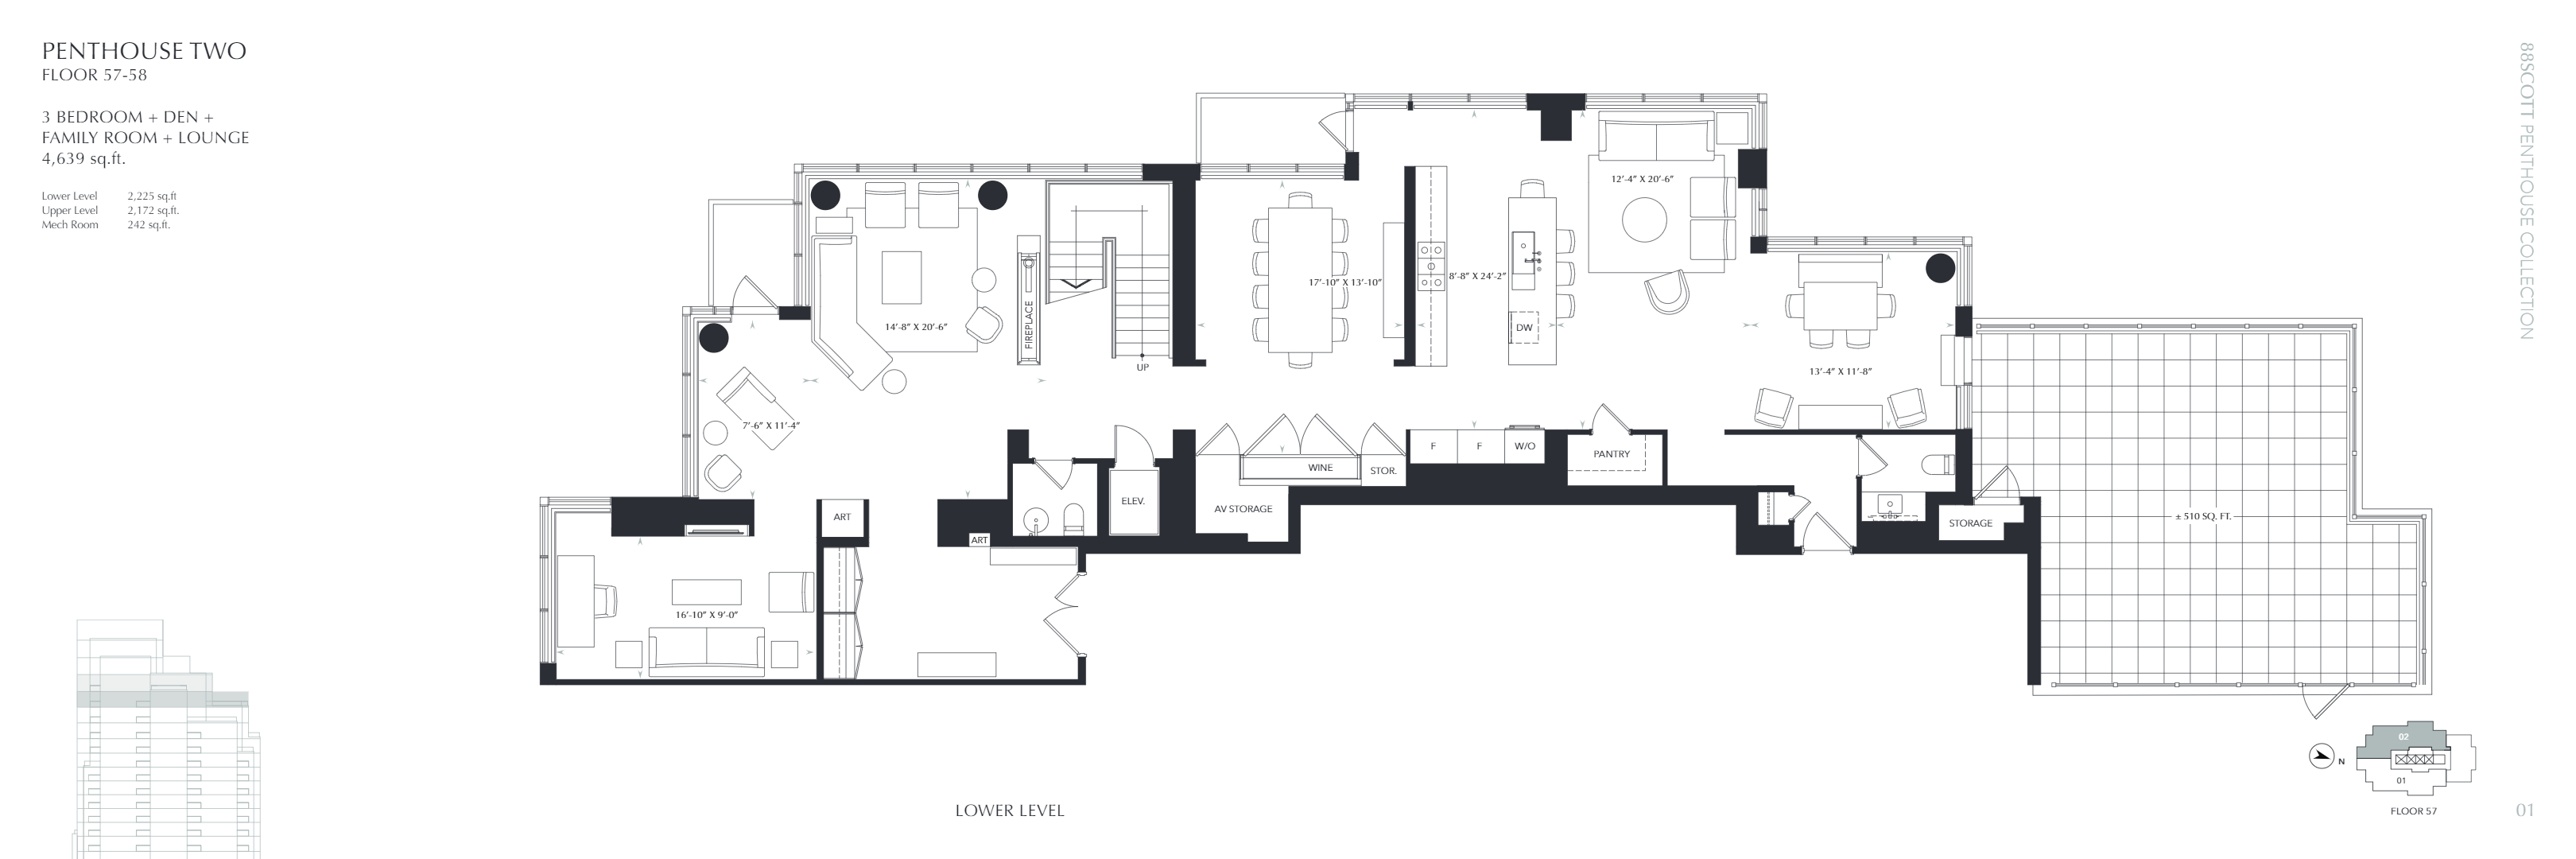 Penthouse Two